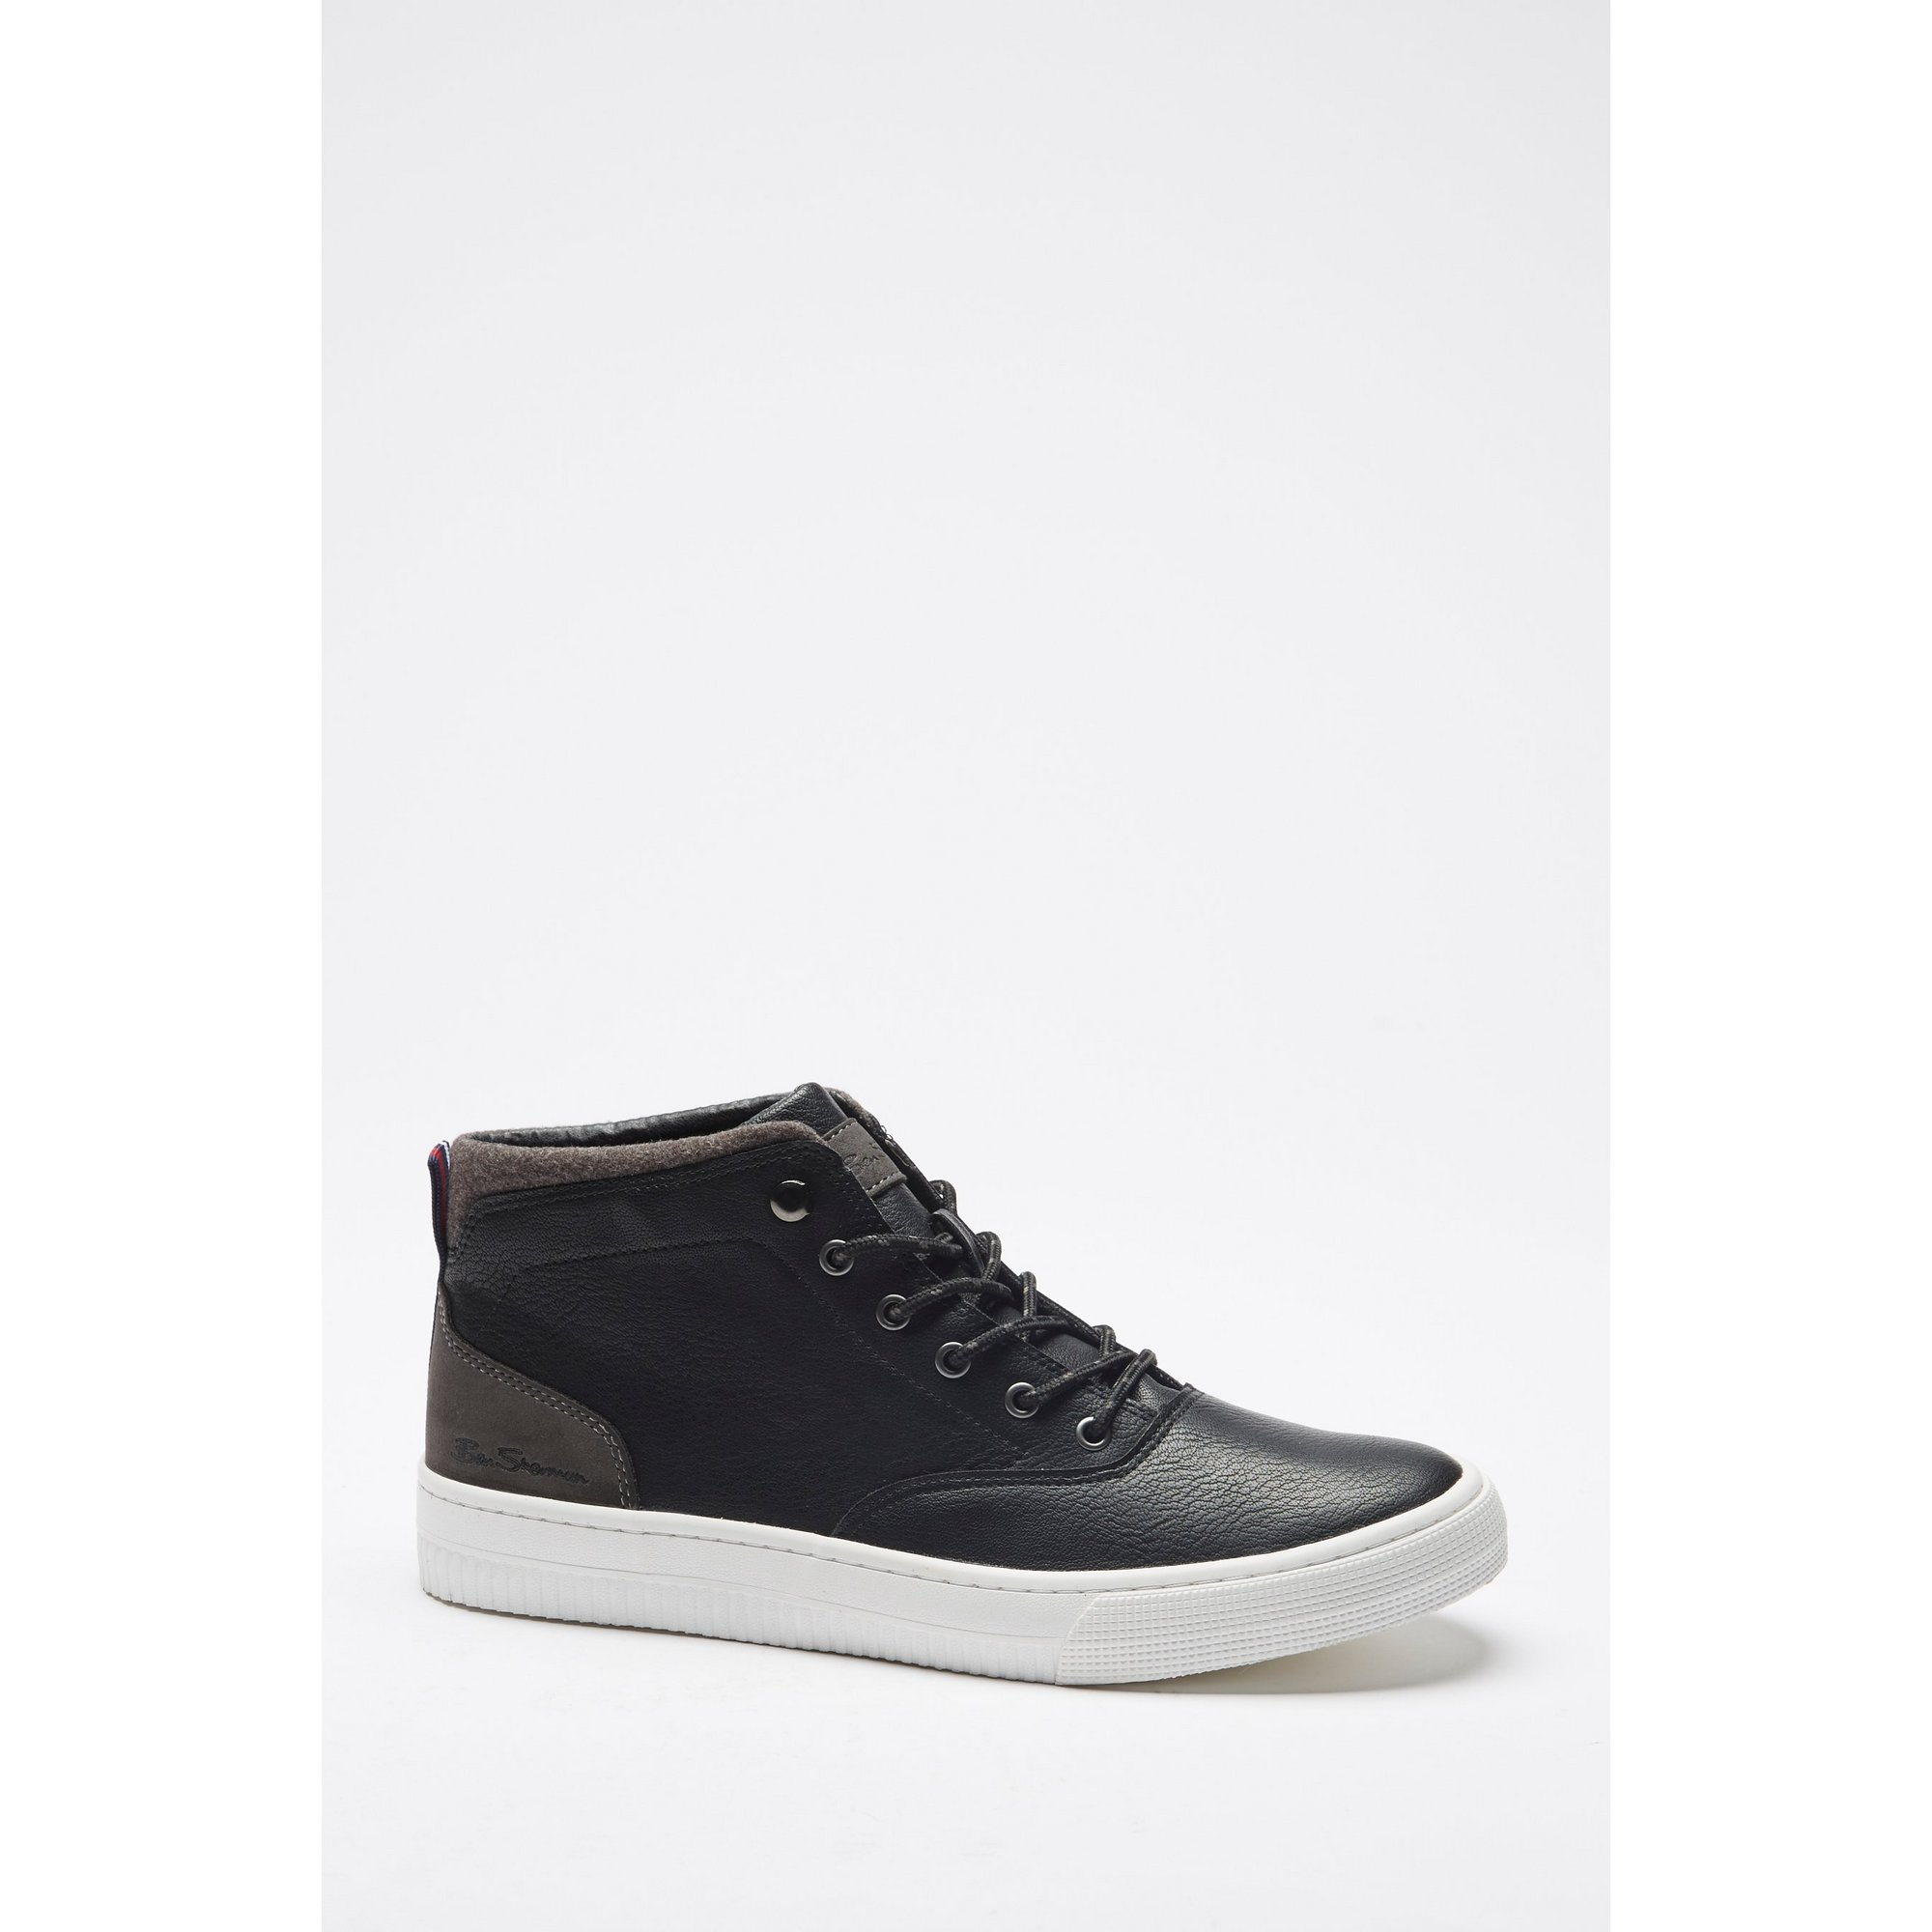 Image of Ben Sherman Fredd Lace Up Boots